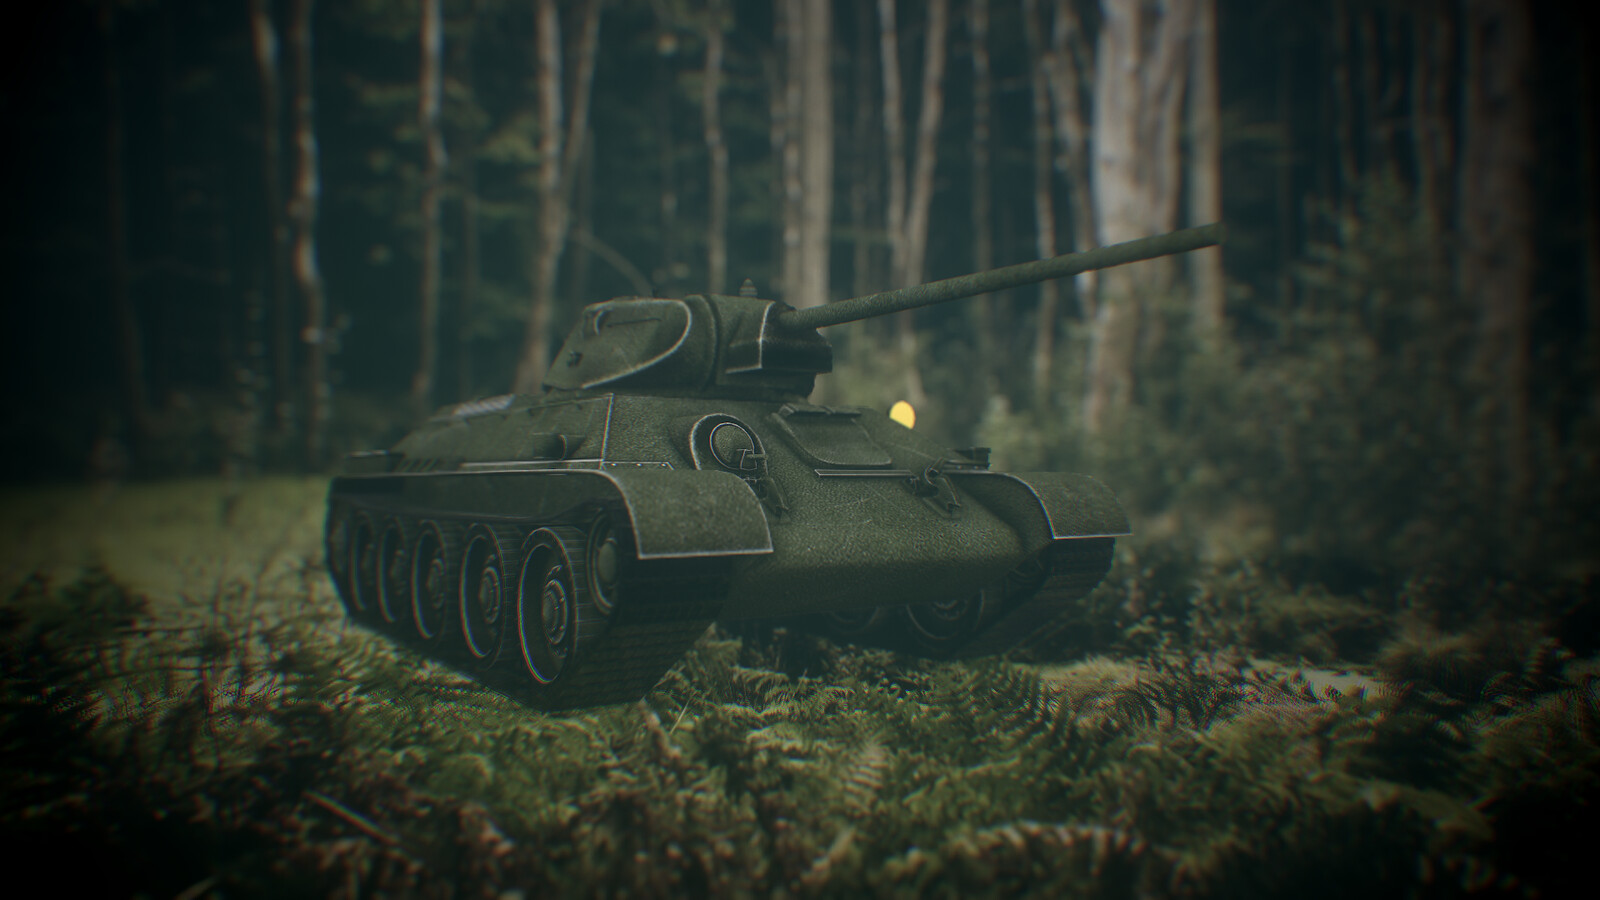 Low Poly Soviet Tank T-34 Game ready Soviet Tank T-34 Game ready    scorpion3d.com   Tomas Laureckis